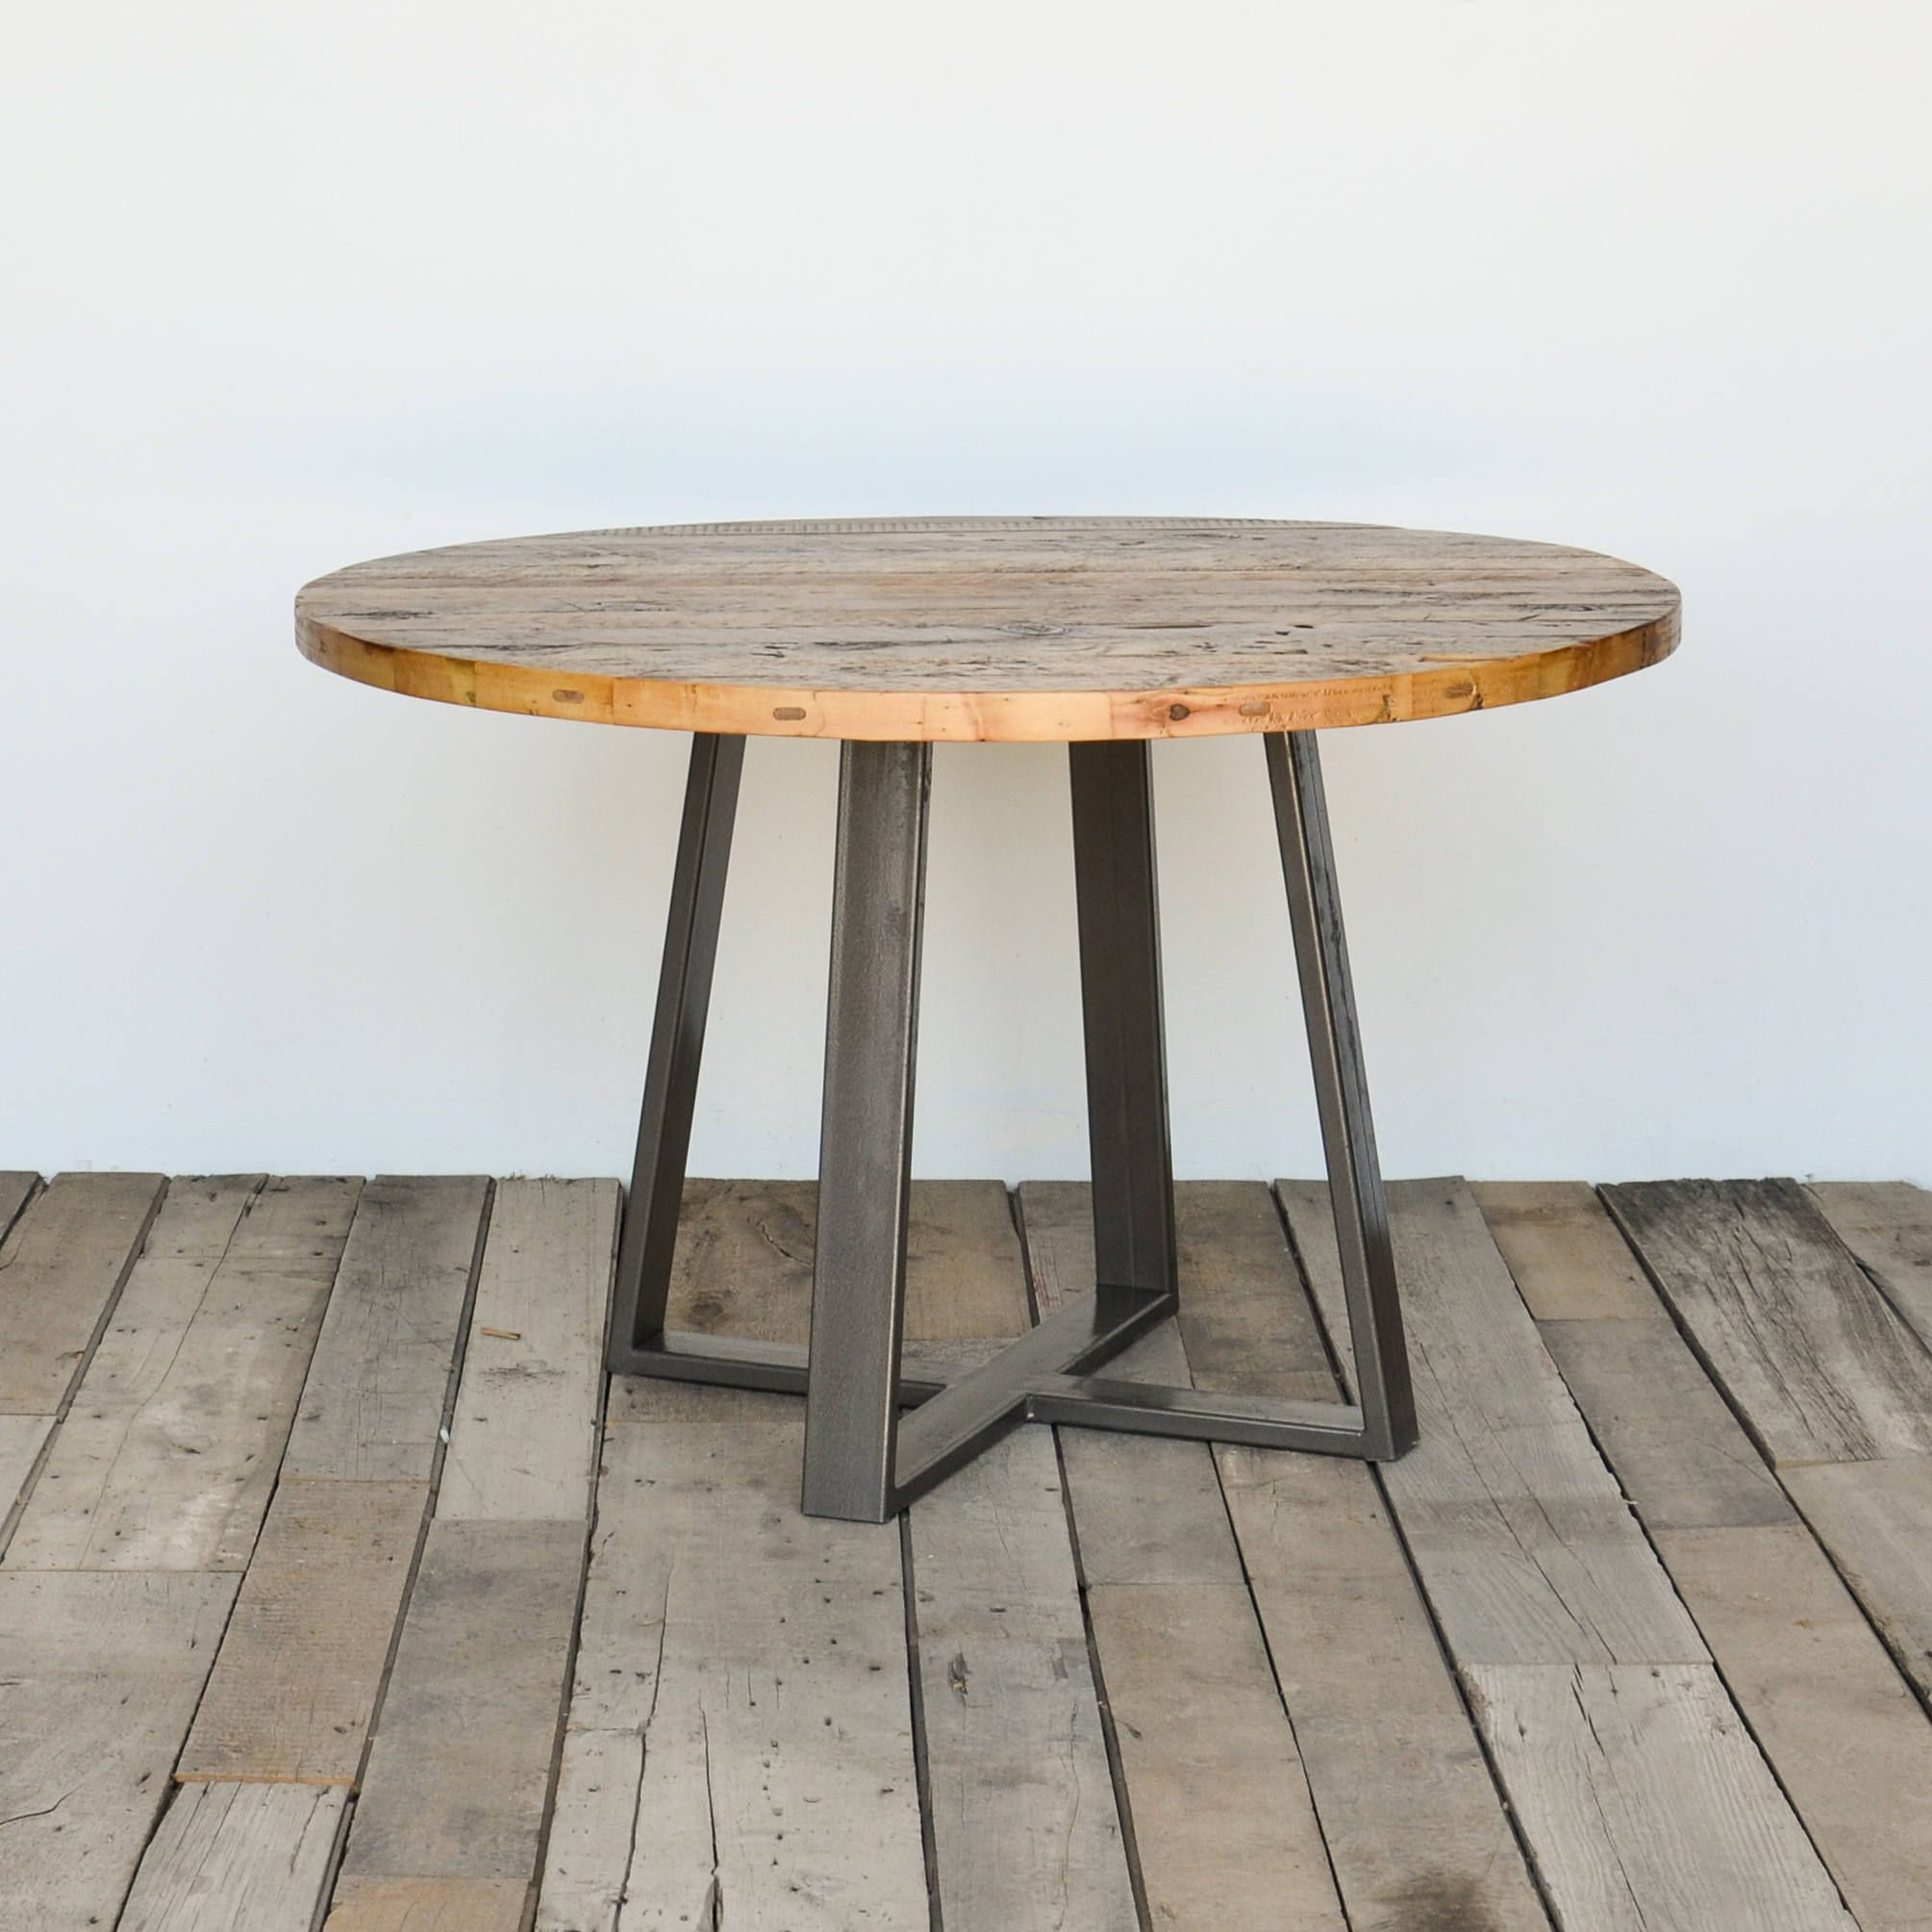 Round Top Pedestal Table In Reclaimed Wood And Steel Legs In